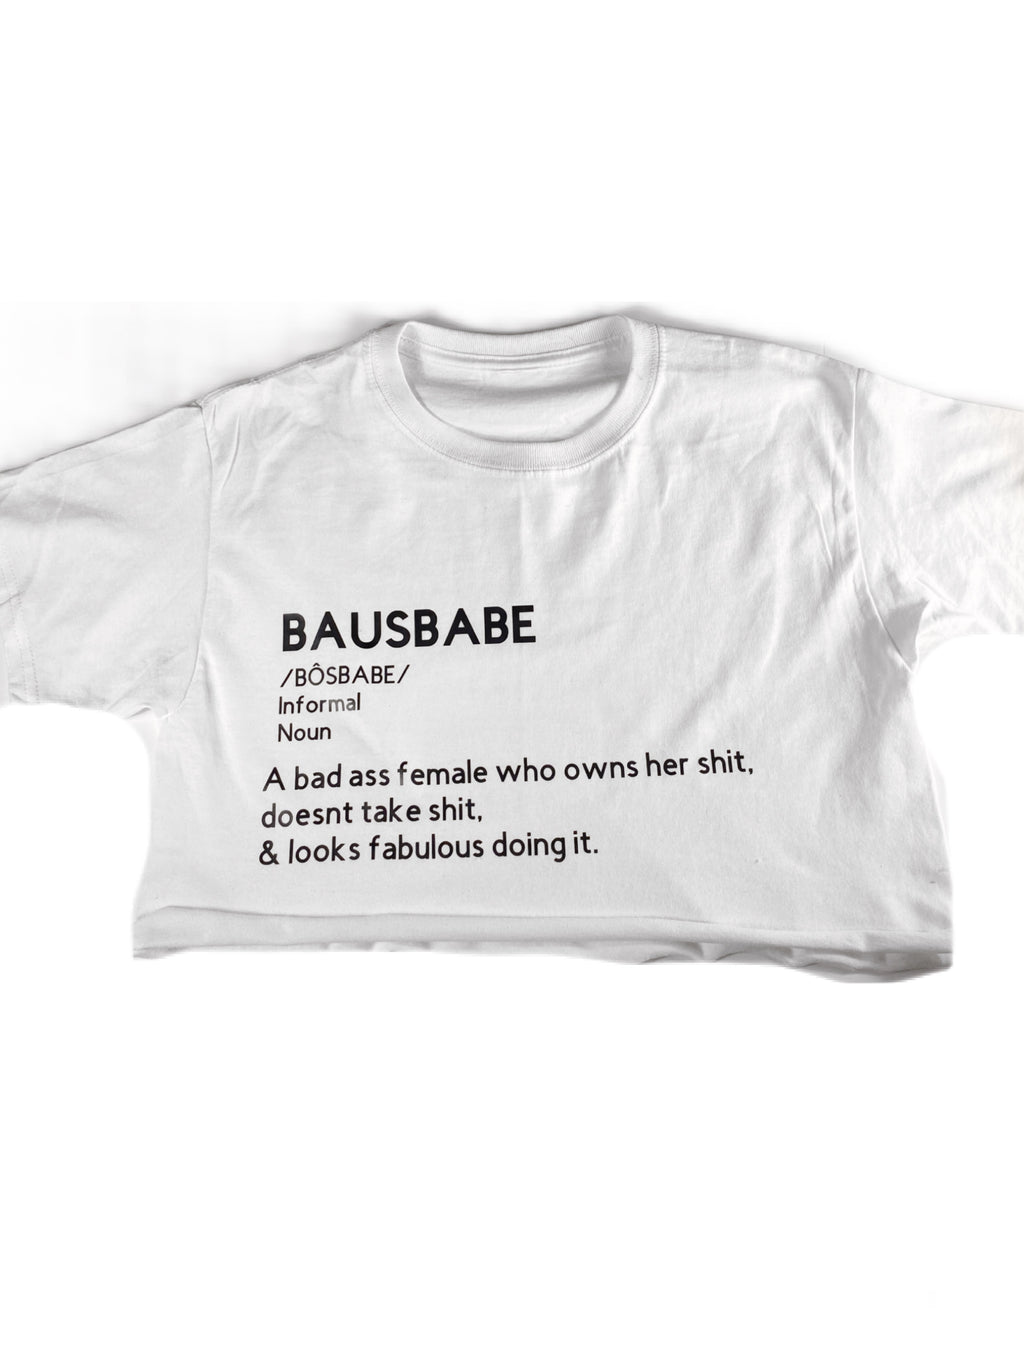 Crop Top- Bausbabe/GirlBaus